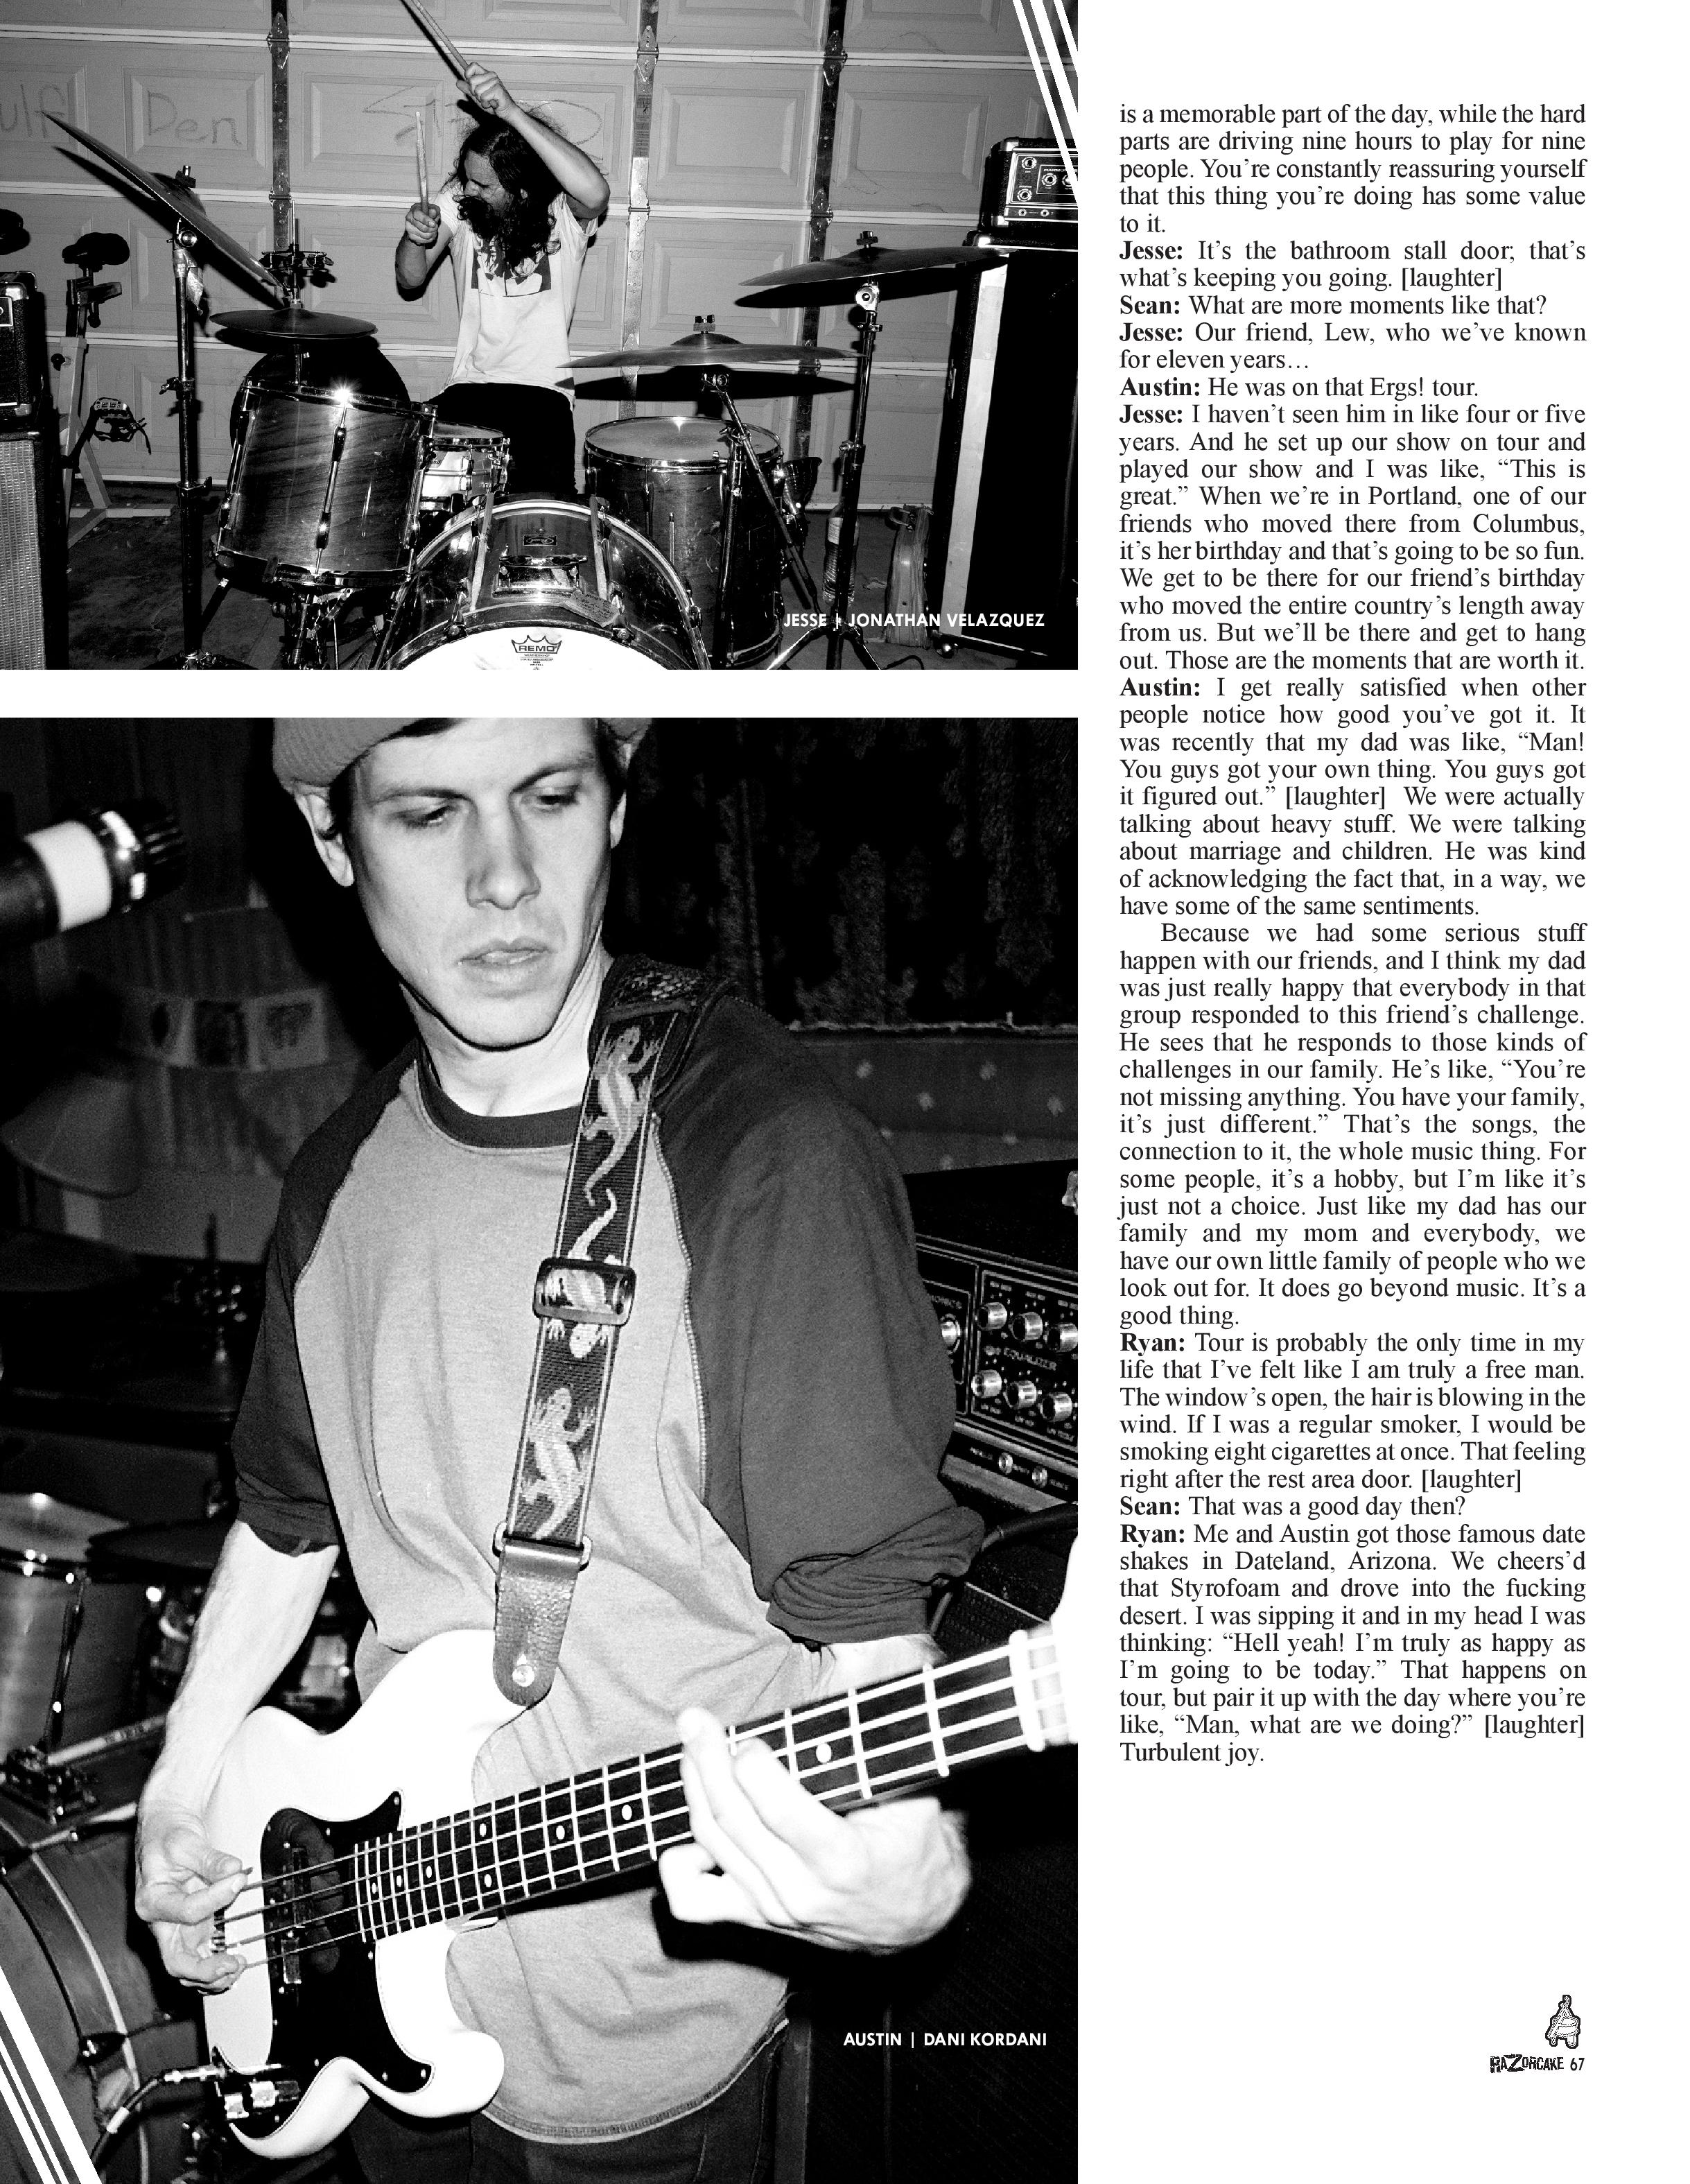 delay_interview-page-012.jpg